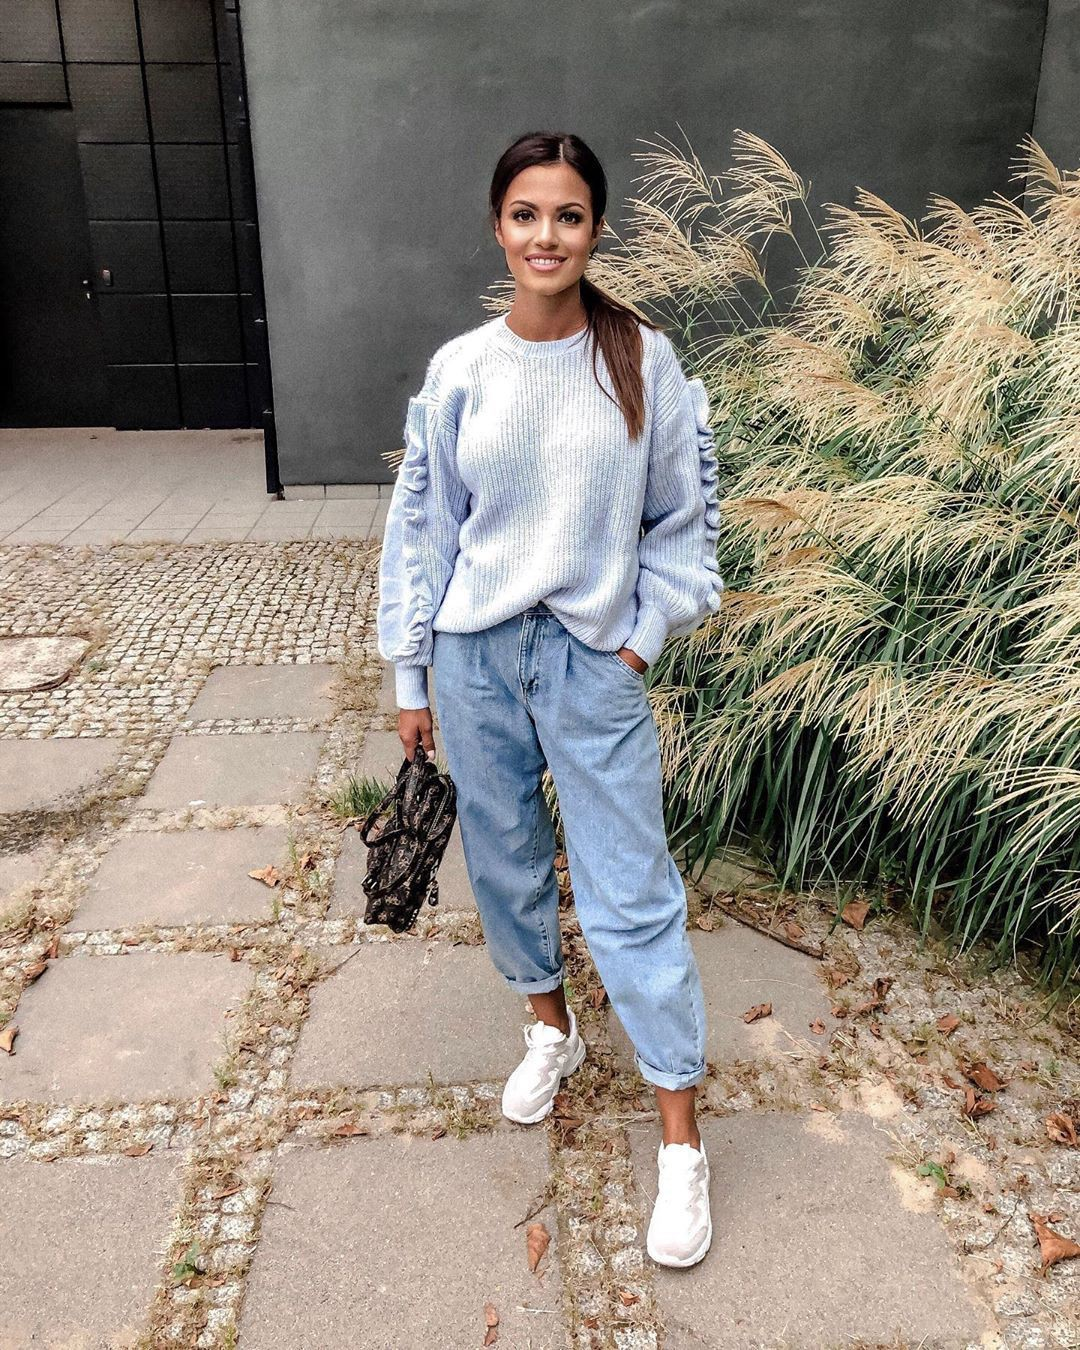 Colour outfit ideas 2020 with trousers, denim, jeans